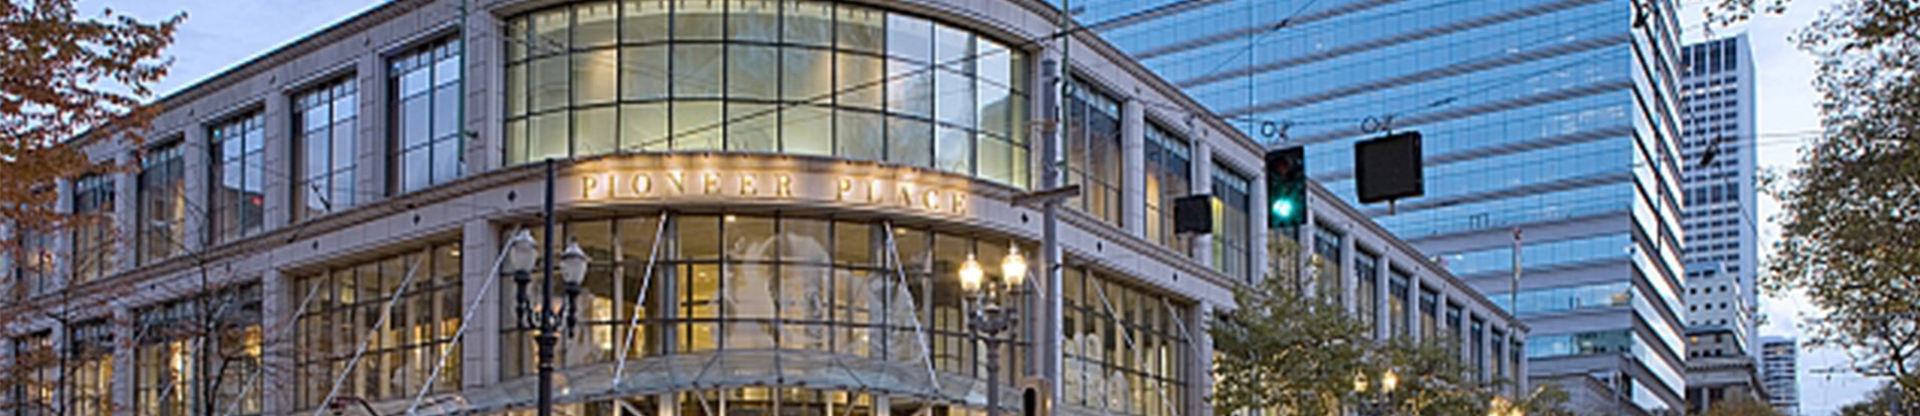 Pioneer place in Portland where Meetio's US office is located